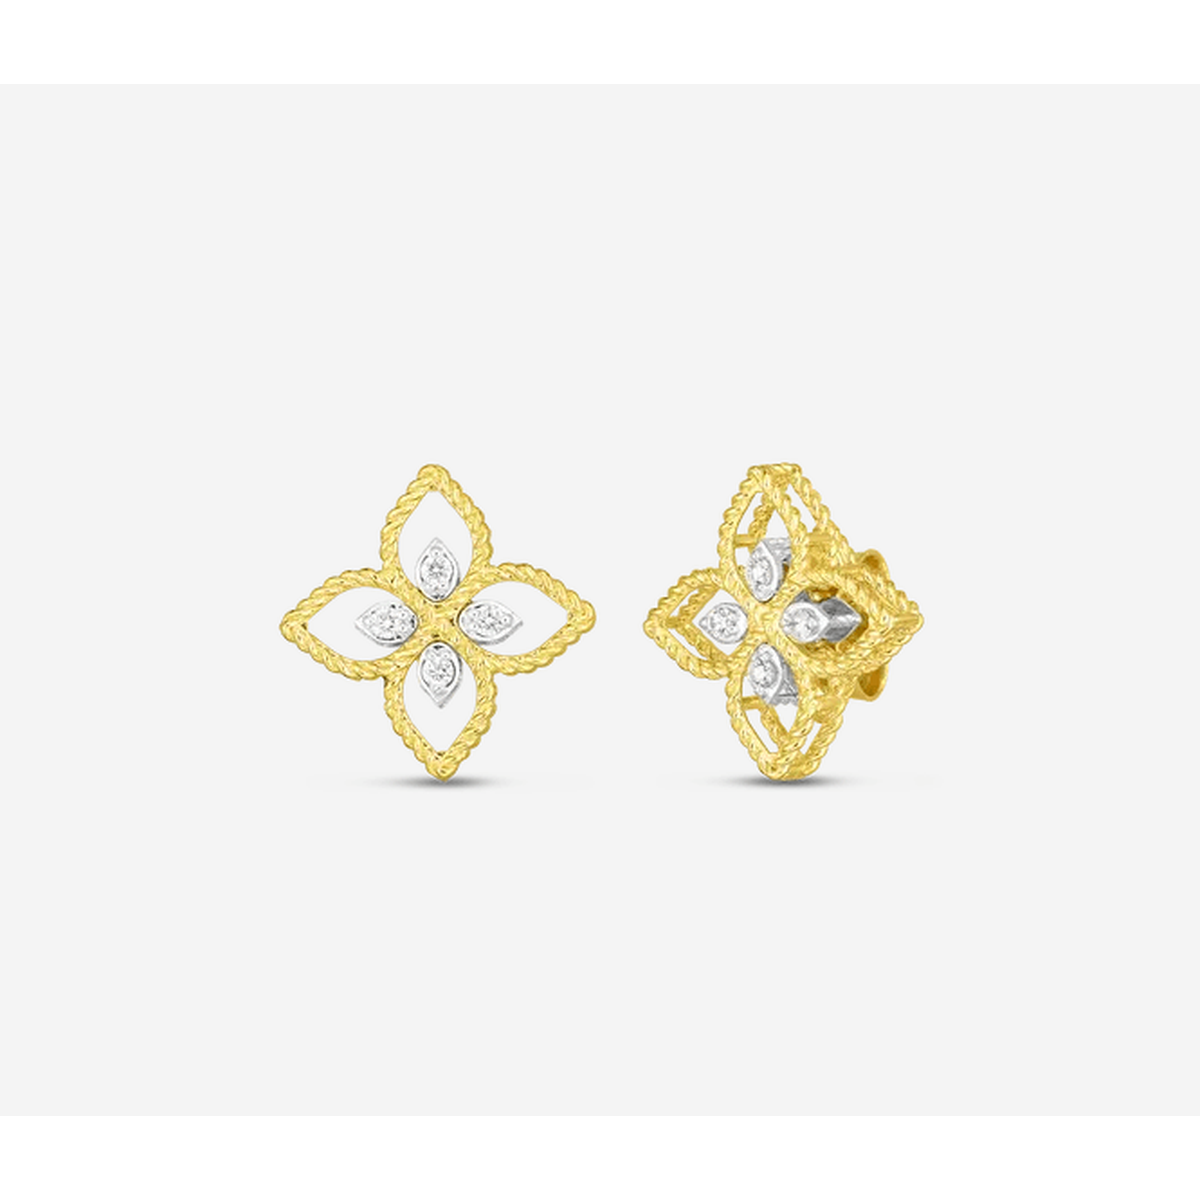 18k Yellow Gold & Diamond Earrings - 7772717AJERX-Roberto Coin-Renee Taylor Gallery